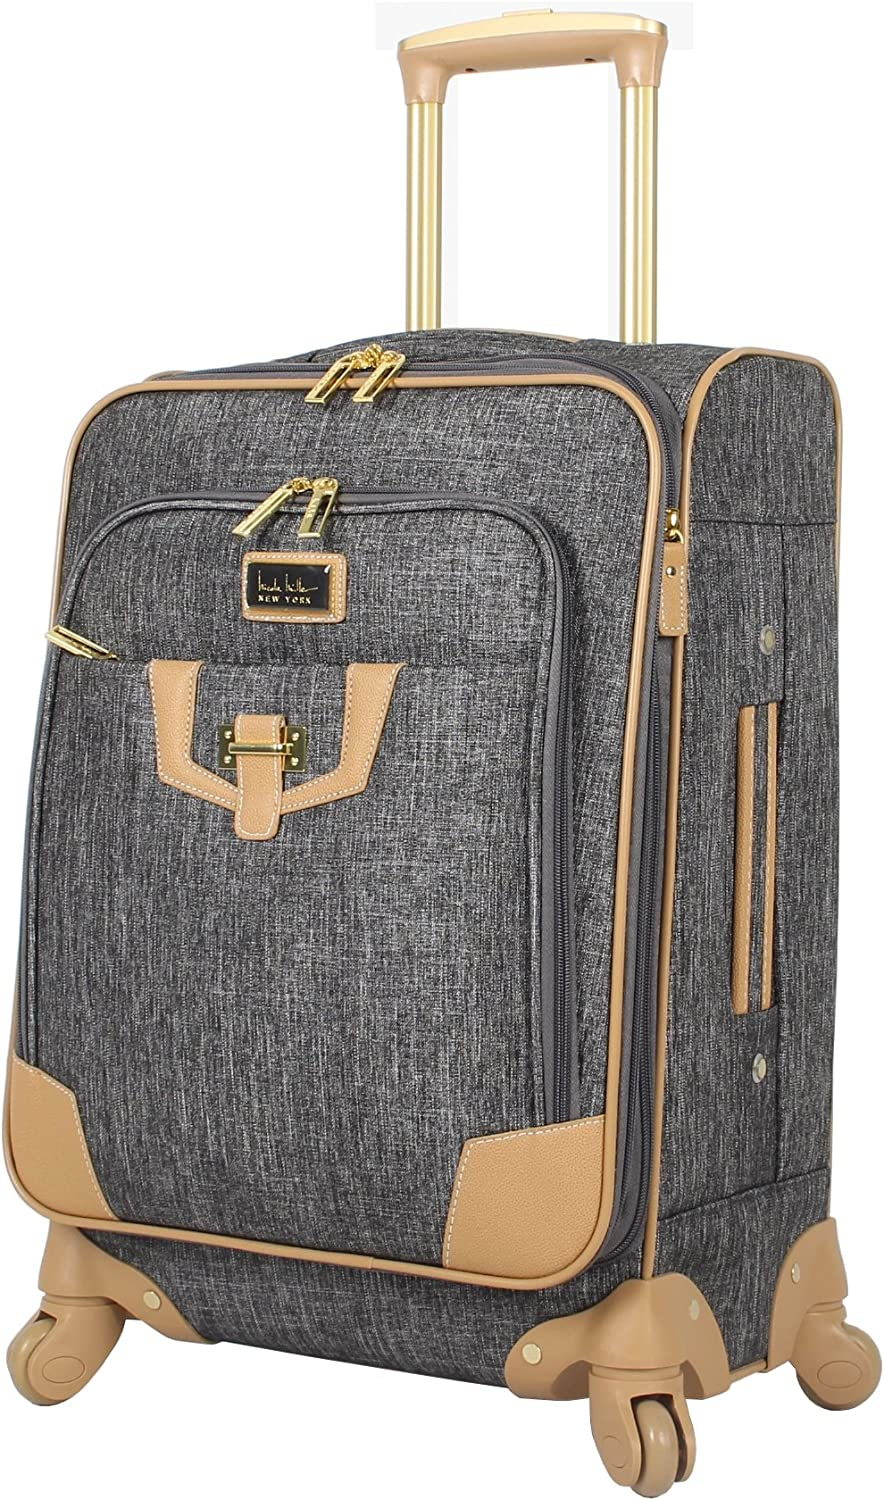 Nicole Miller New York Luggage Collection – Designer Lightweight Softside Expandable Suitcase- 20 Inch Carry On Bag with 4-Rolling Spinner Wheels Paige Silver